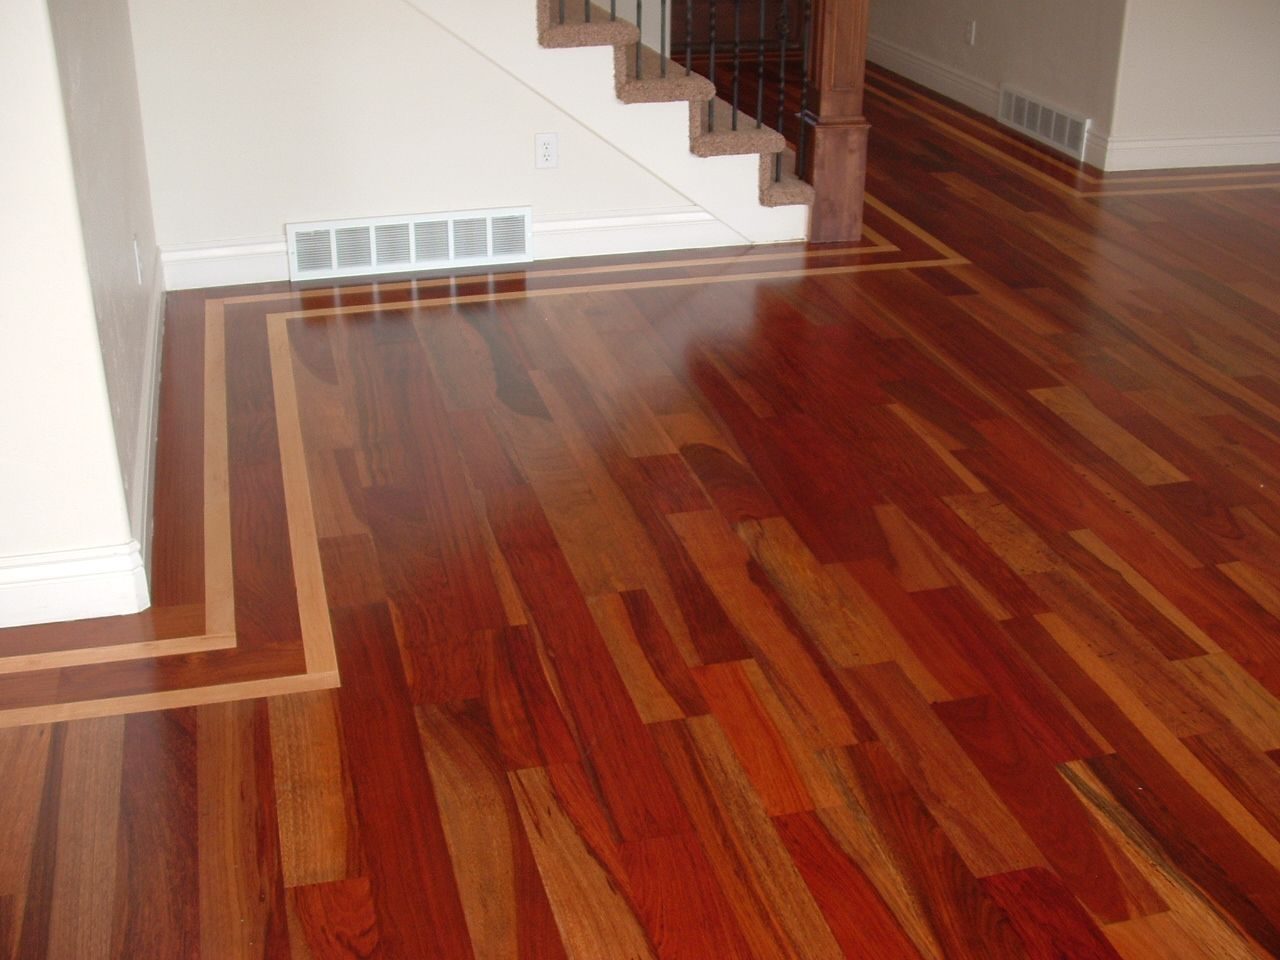 Brazilian Cherry Hardwood Flooring - Flooring Ideas Home - 25+ Best Ideas About Brazilian Cherry Hardwood Flooring On